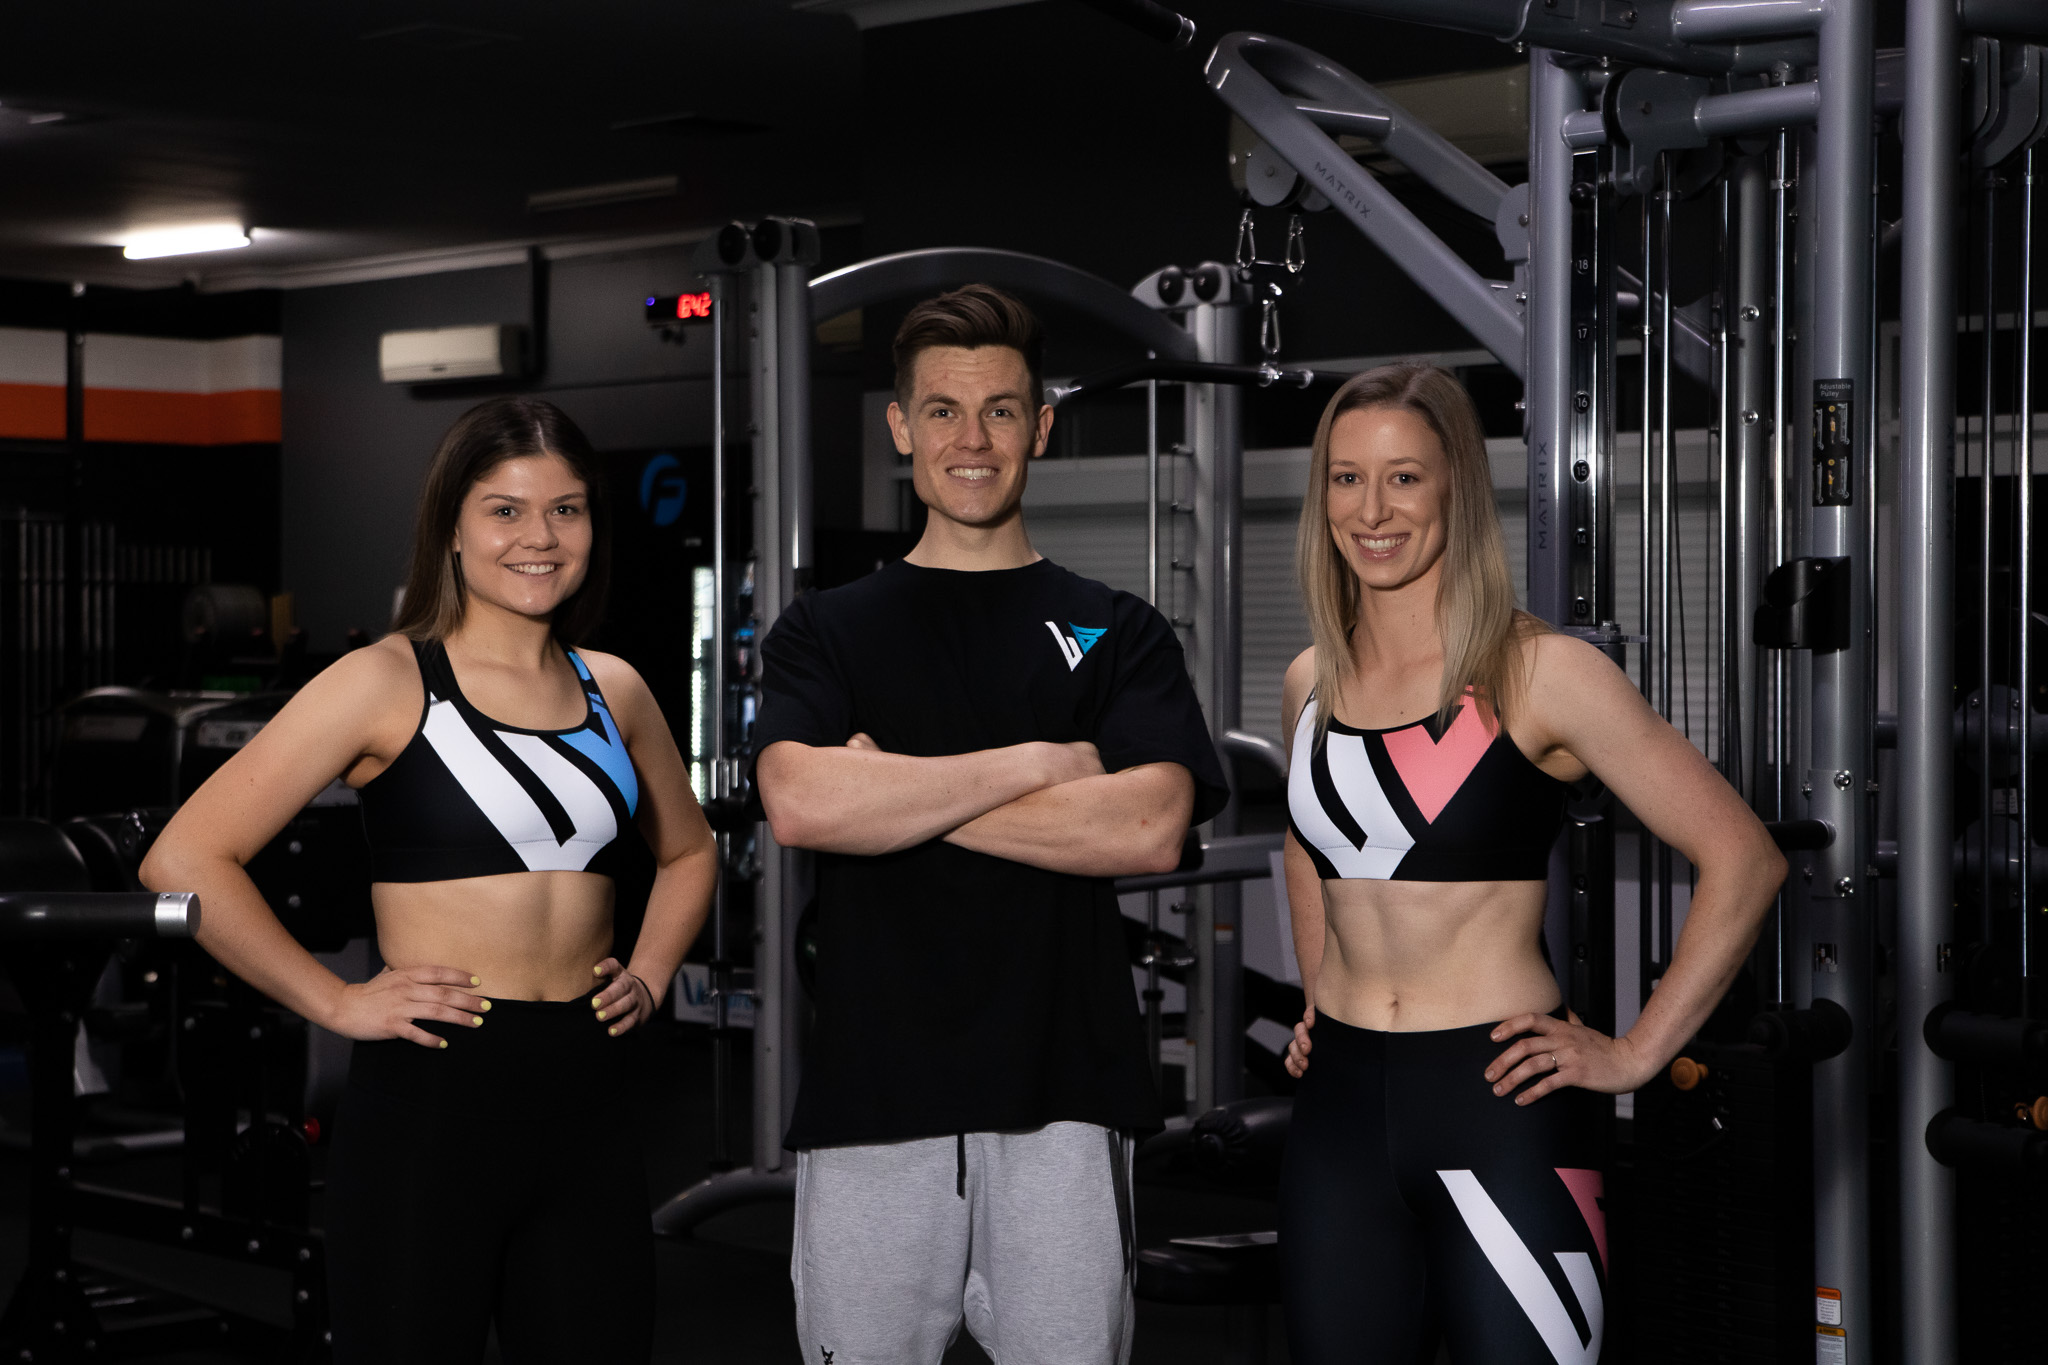 product, fitness, riverland, gym, healthy, promotional, customised, website, personal trainer, commercial, clothing